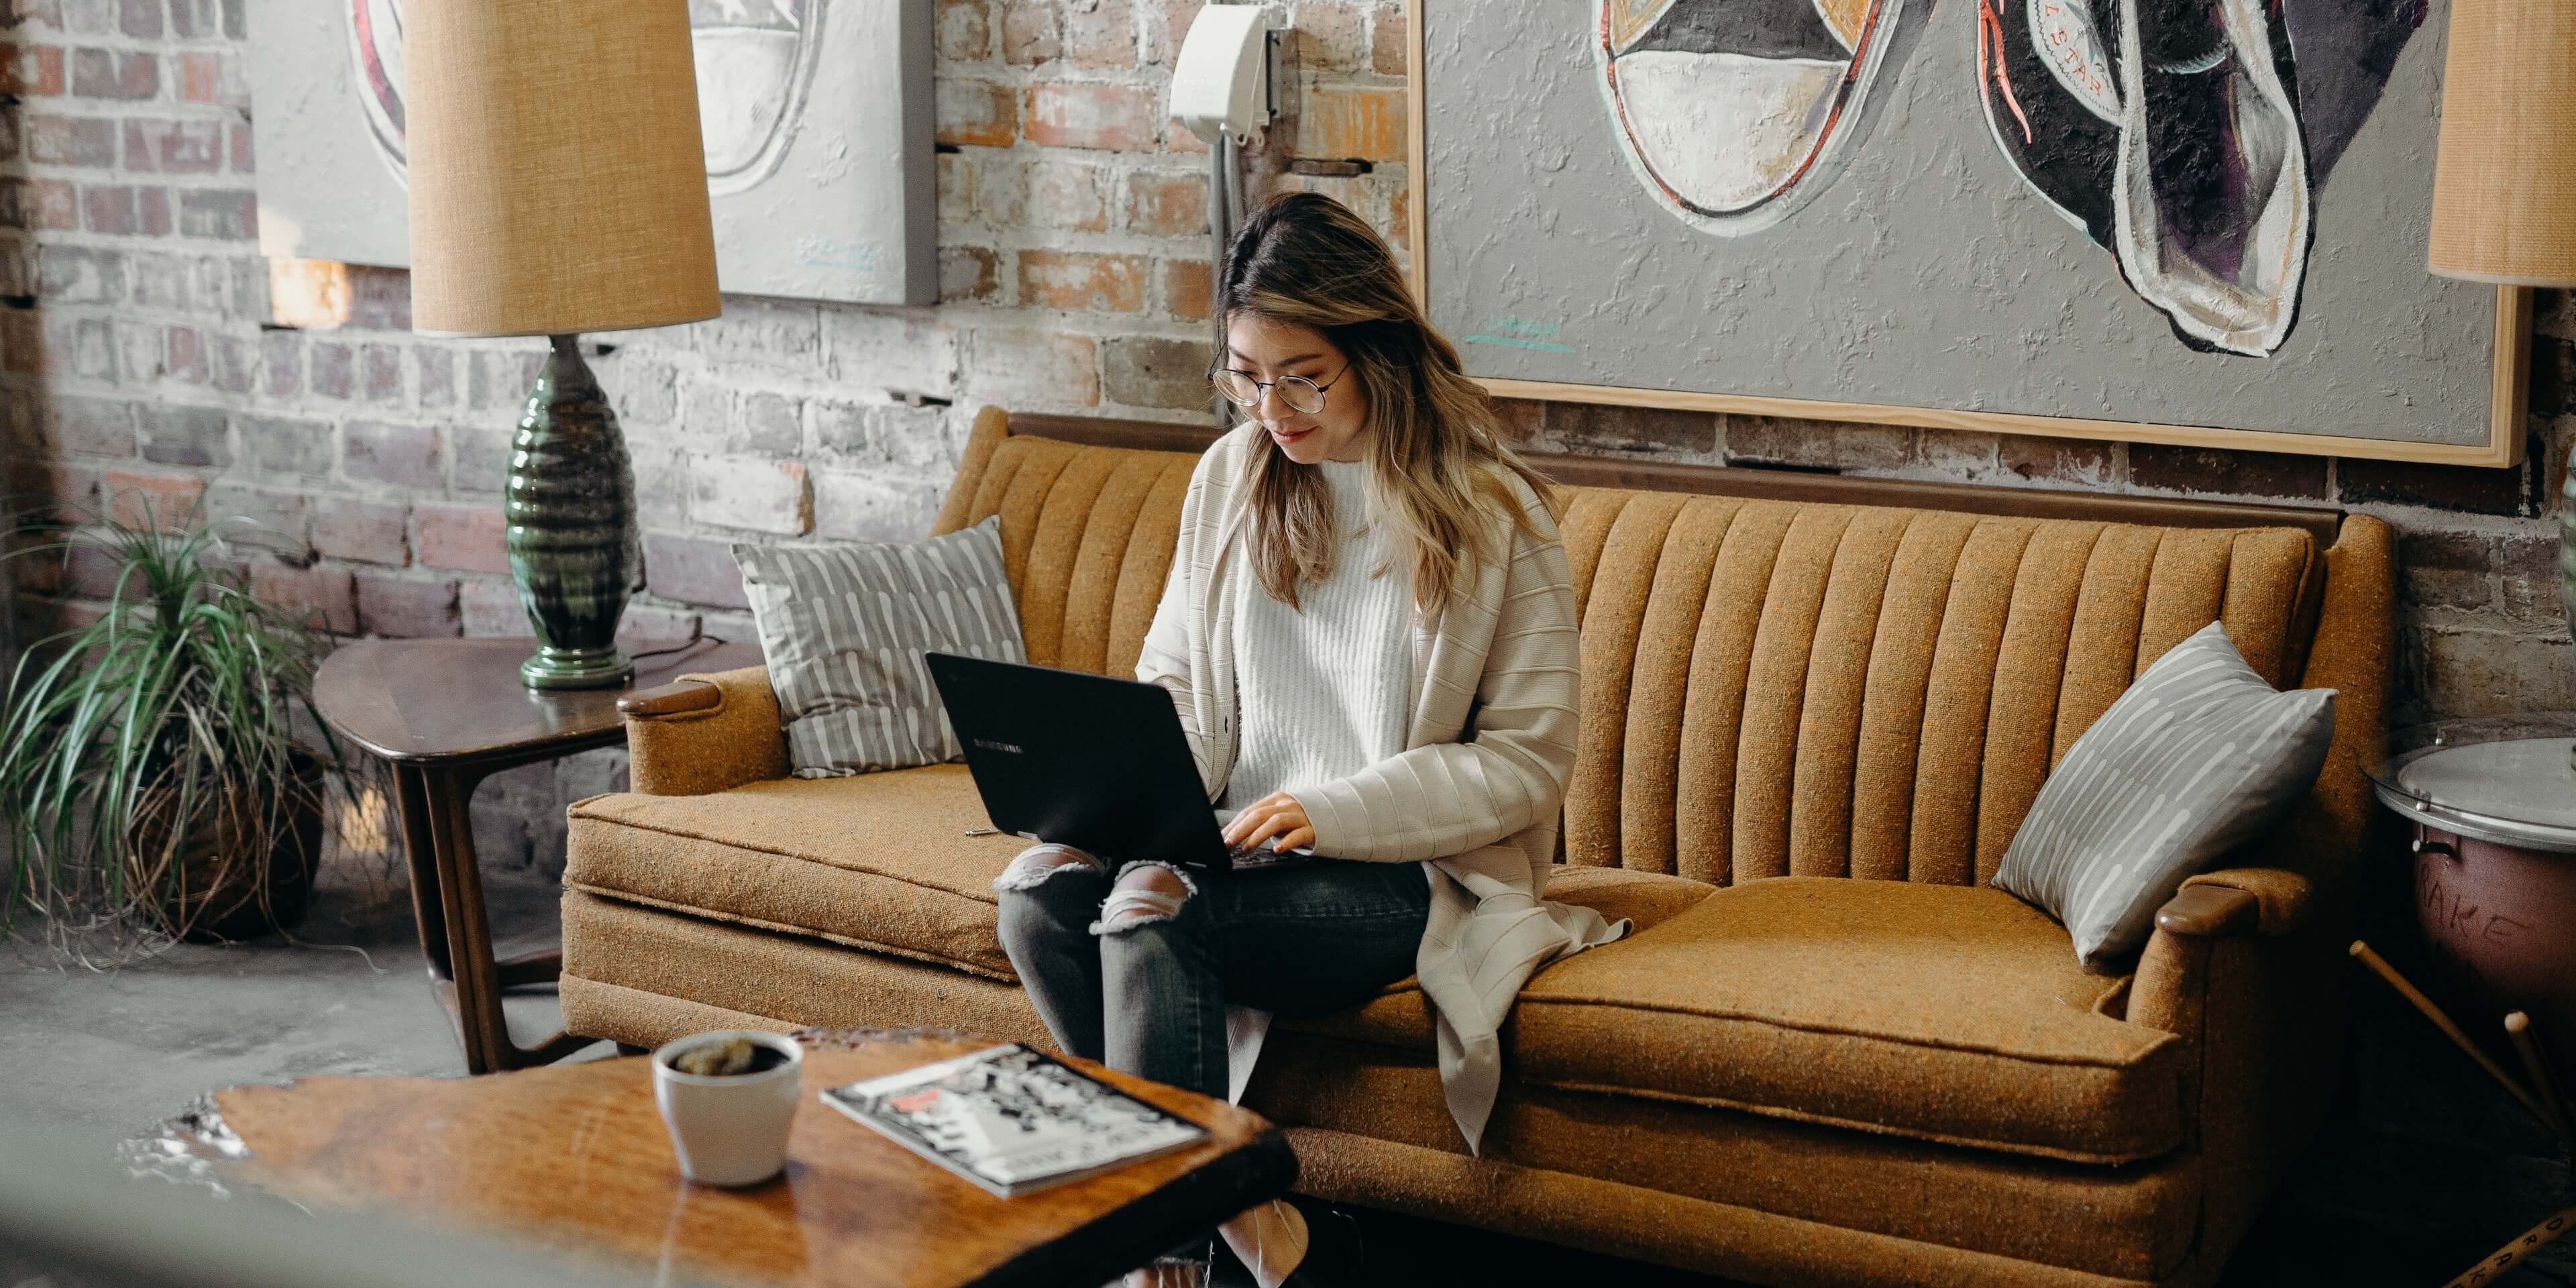 remote work productivity using rpa